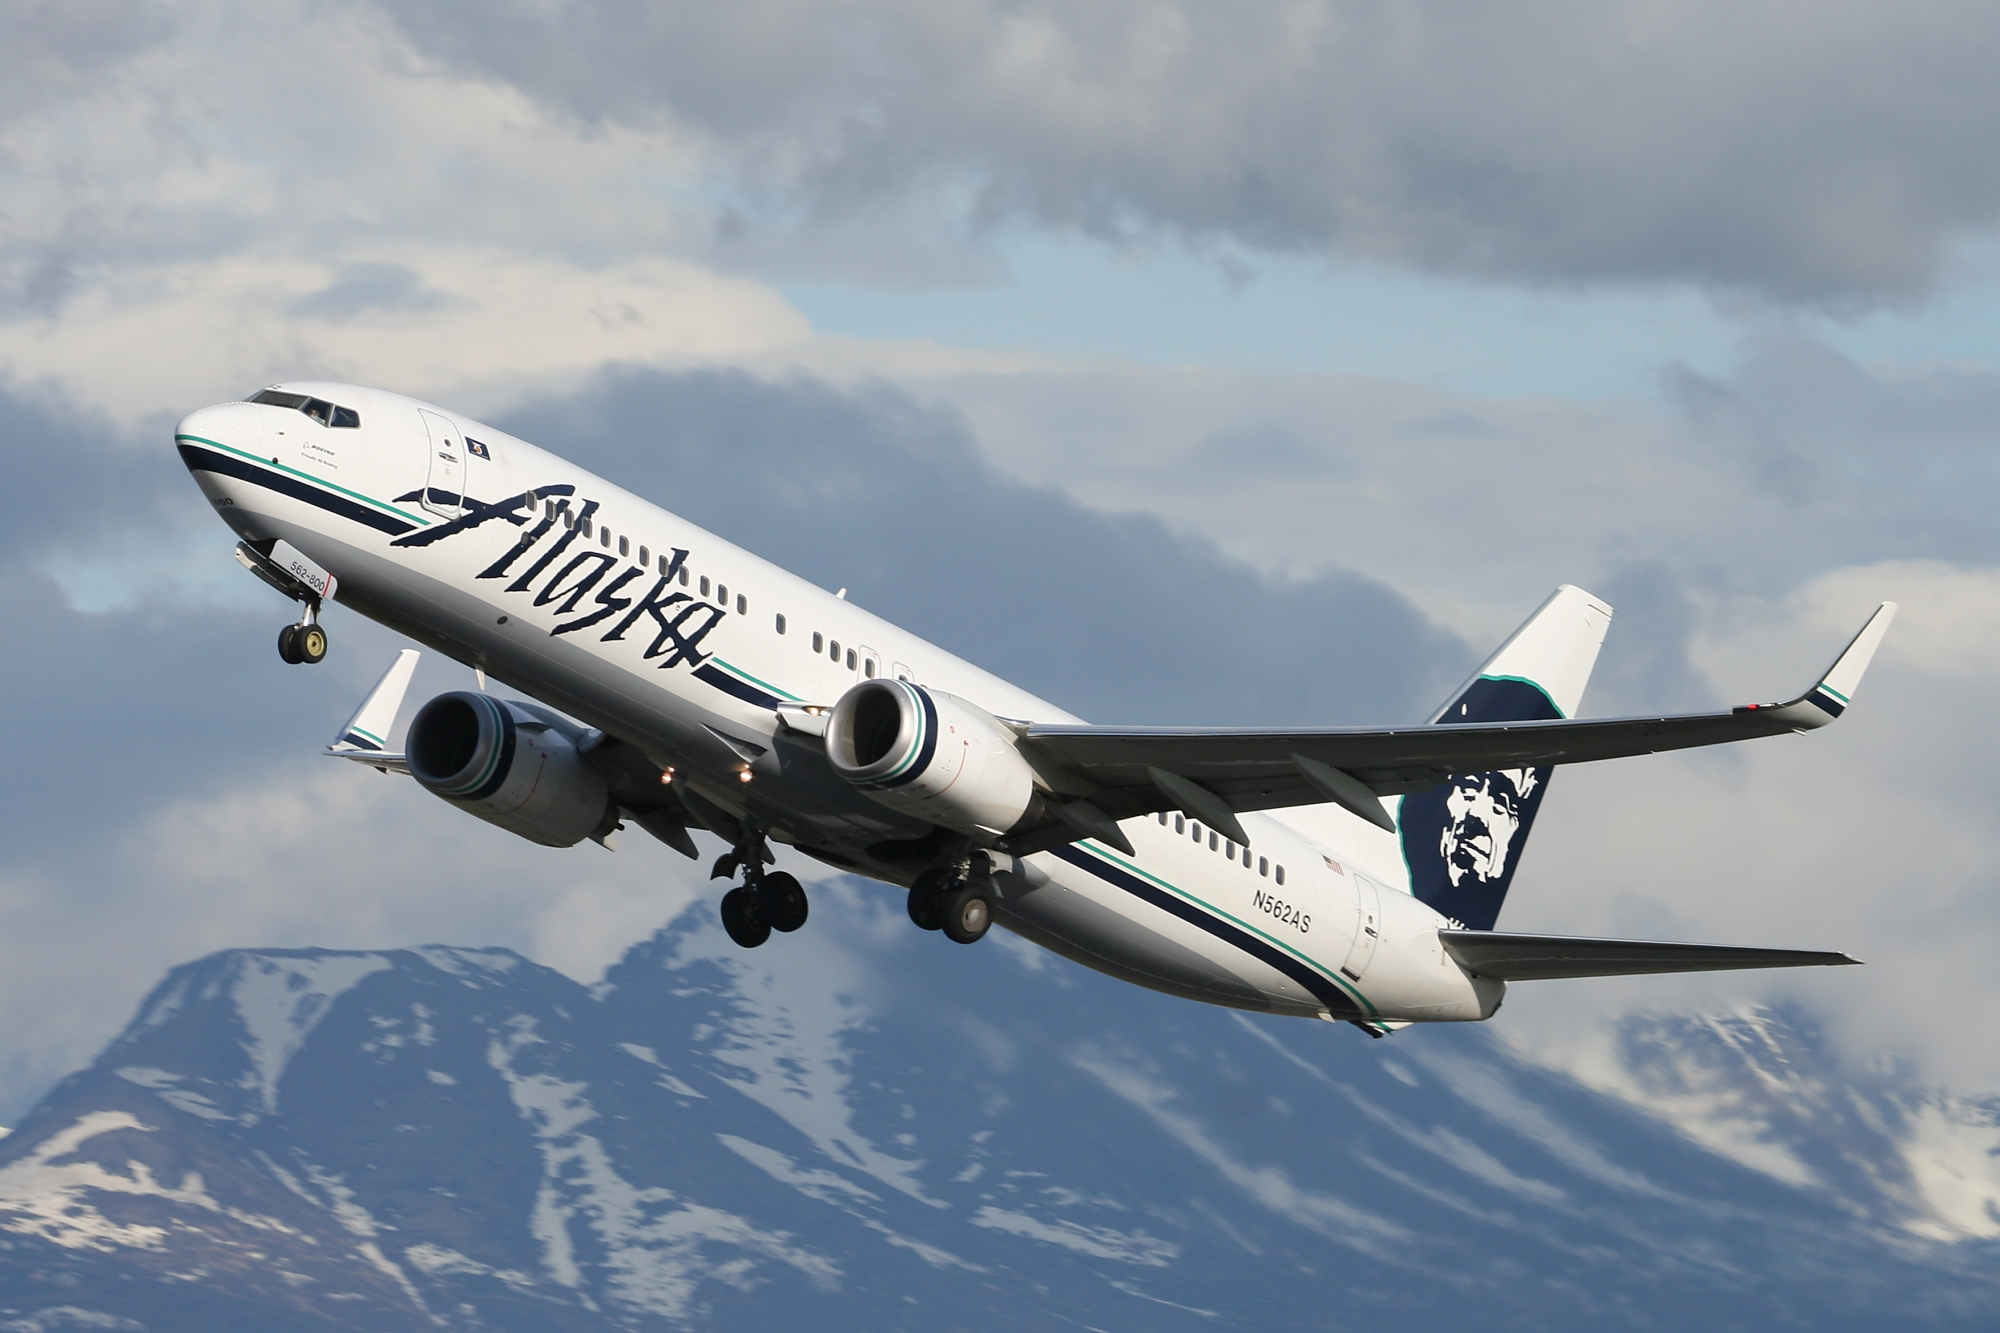 Alaska Airlines And Icelandair Announce Codeshare And Frequent Flier